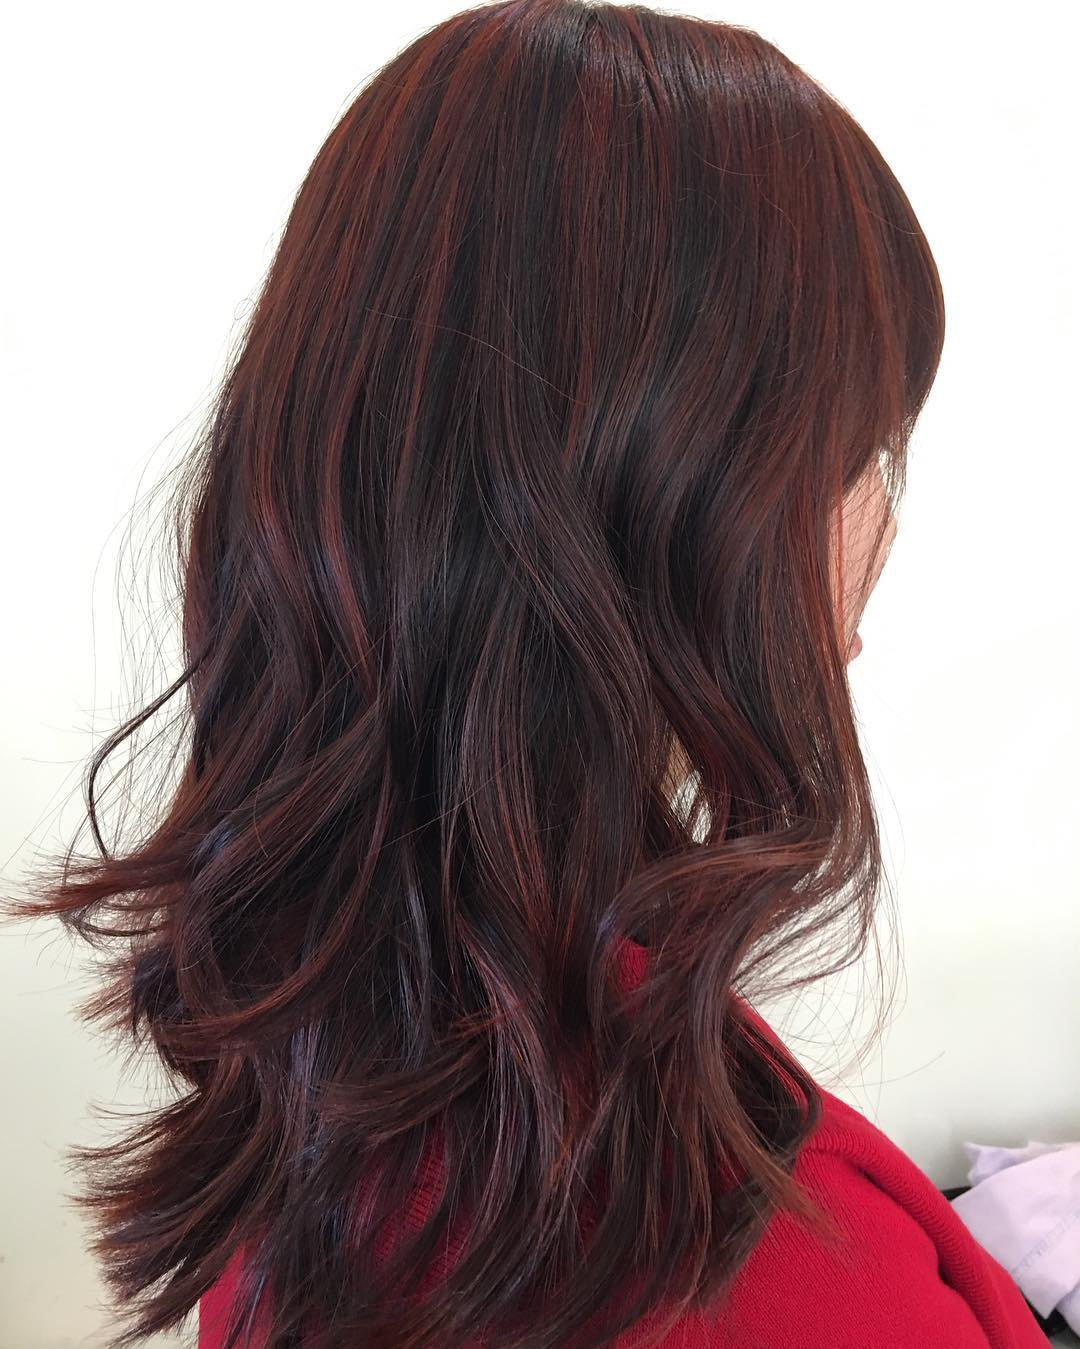 Why You Should Not Go To Dark Brownish Red Hair Colors Dark